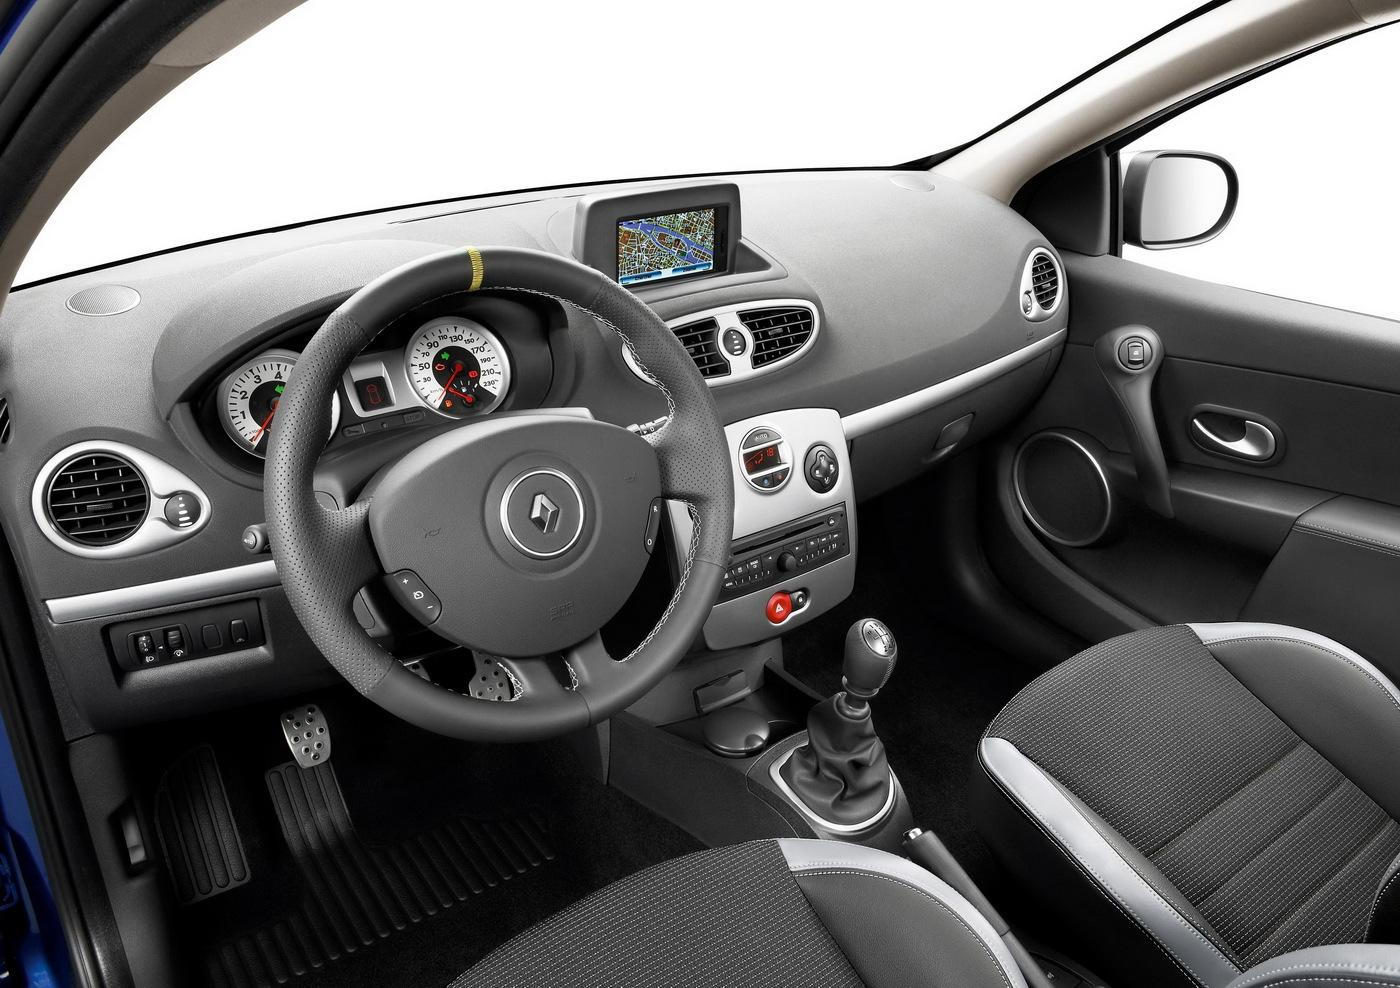 renault clio gt 2009 interior img 5 it s your auto world new cars auto news reviews. Black Bedroom Furniture Sets. Home Design Ideas